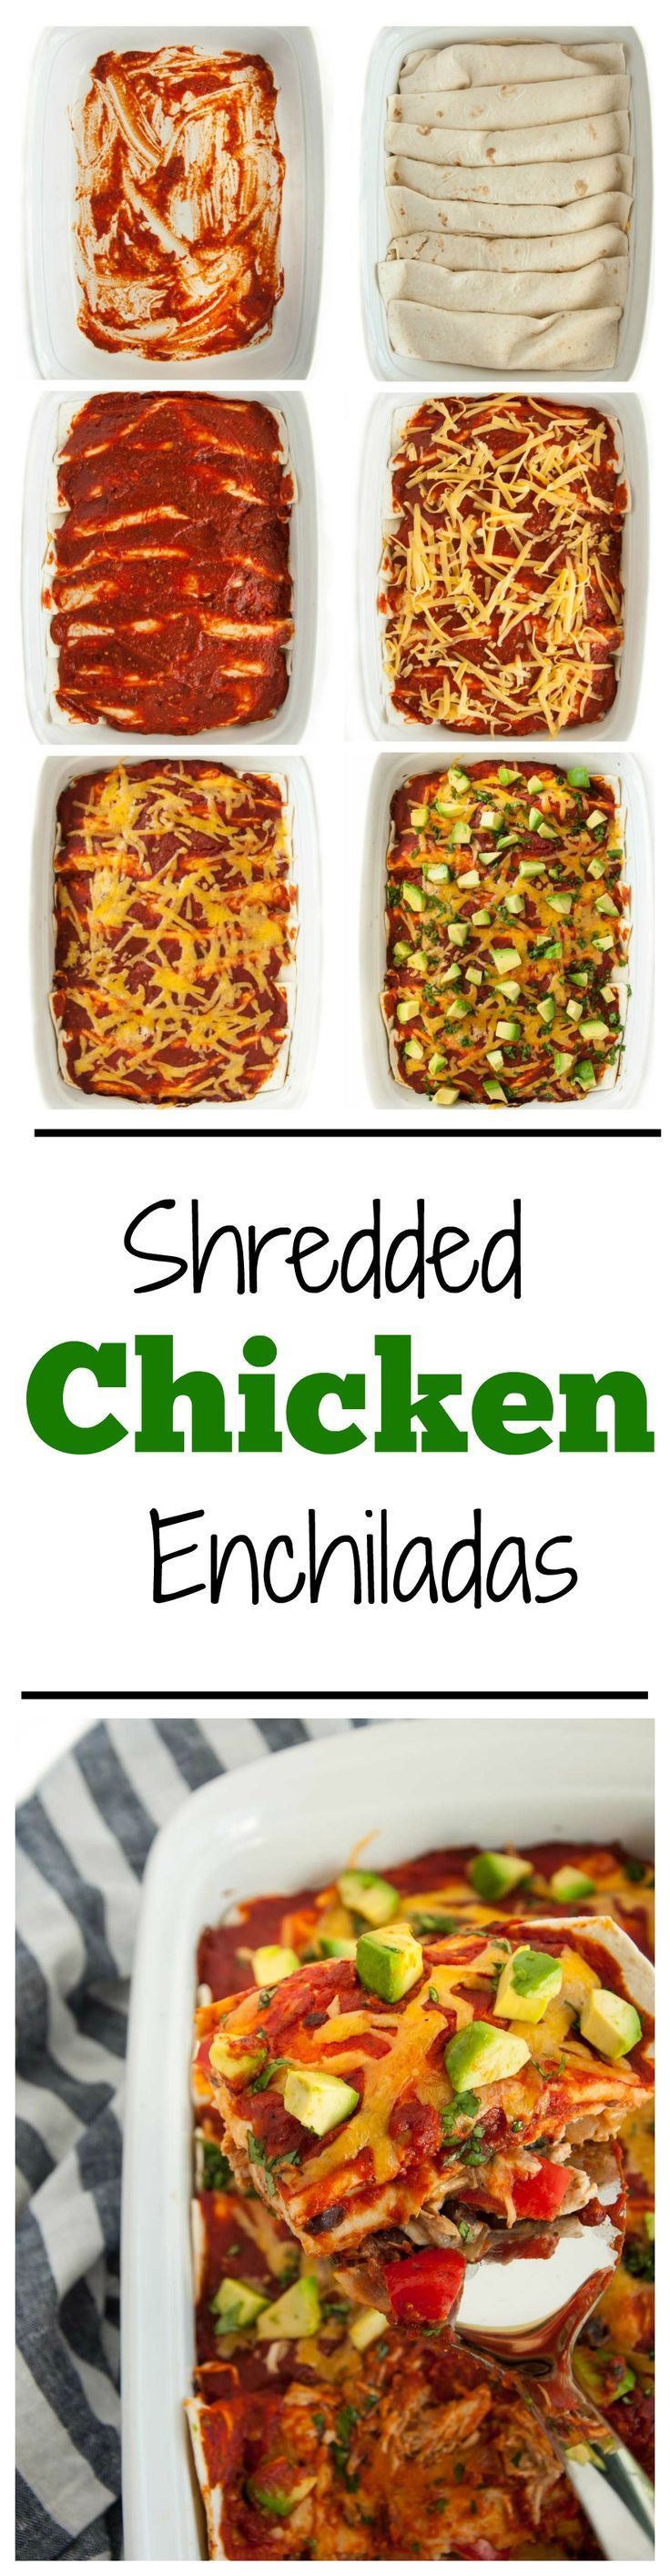 These shredded chicken enchiladas are so insanely delicious! Peppers, chicken, cheese, sour cream and homemade sauce unite in this tasty main dish. - Feasting Not Fasting